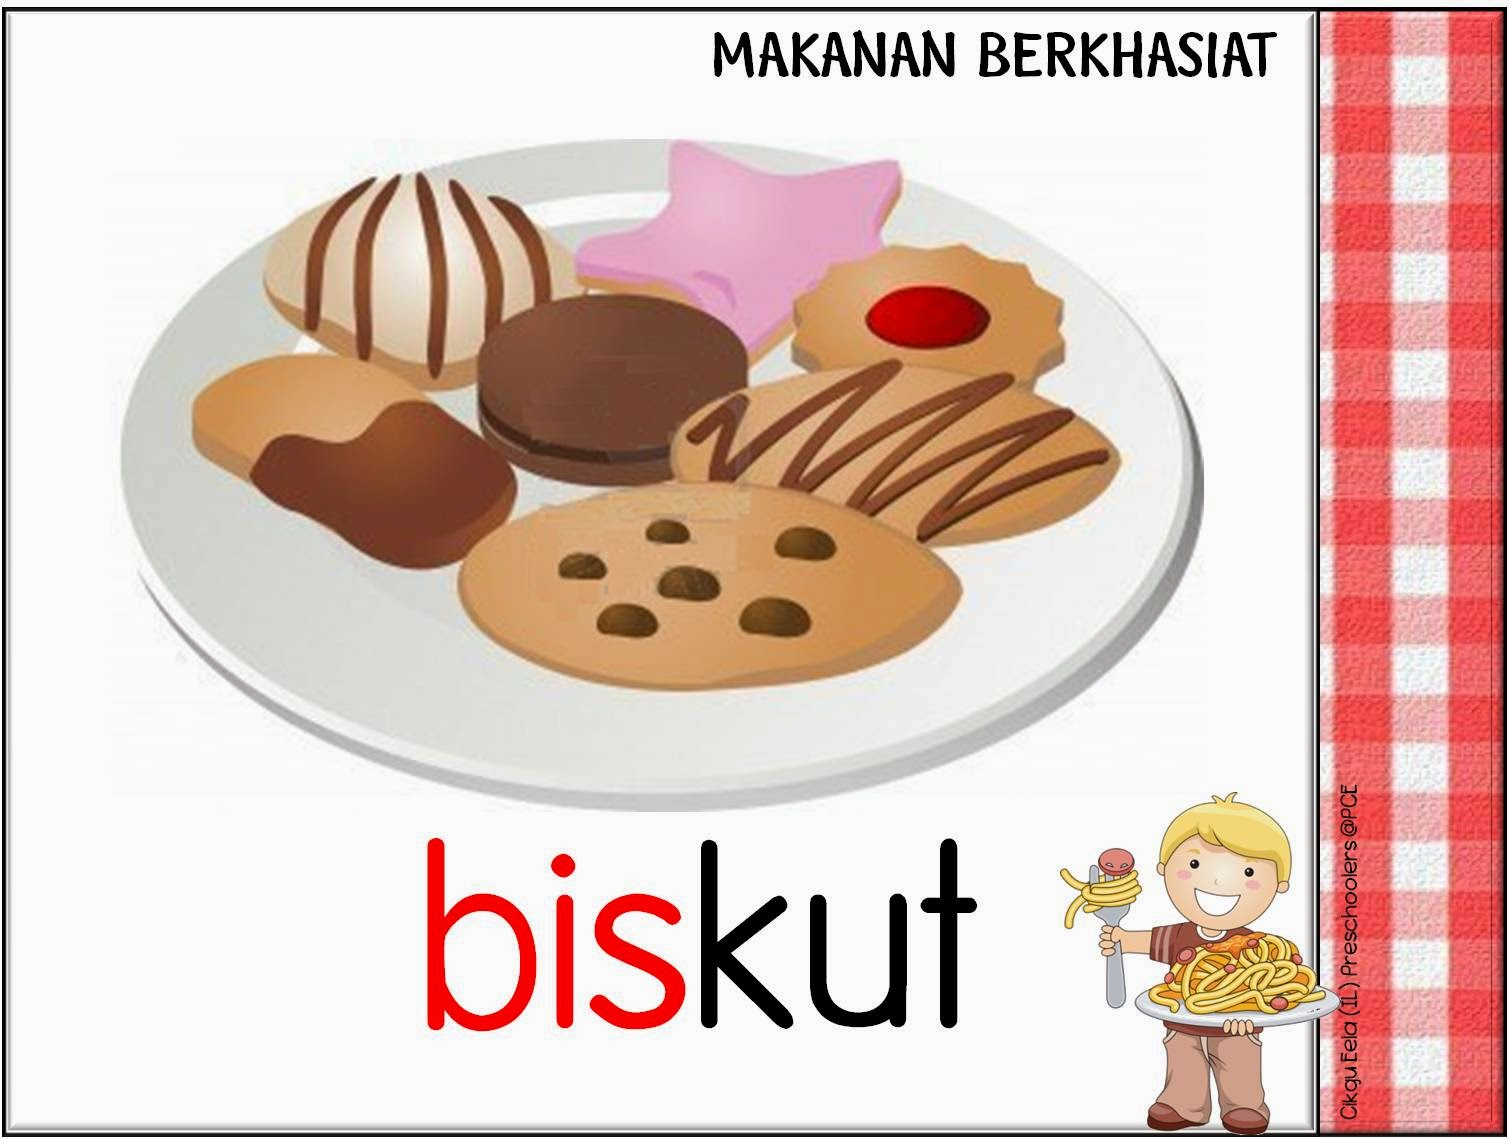 clipart menu makanan - photo #7